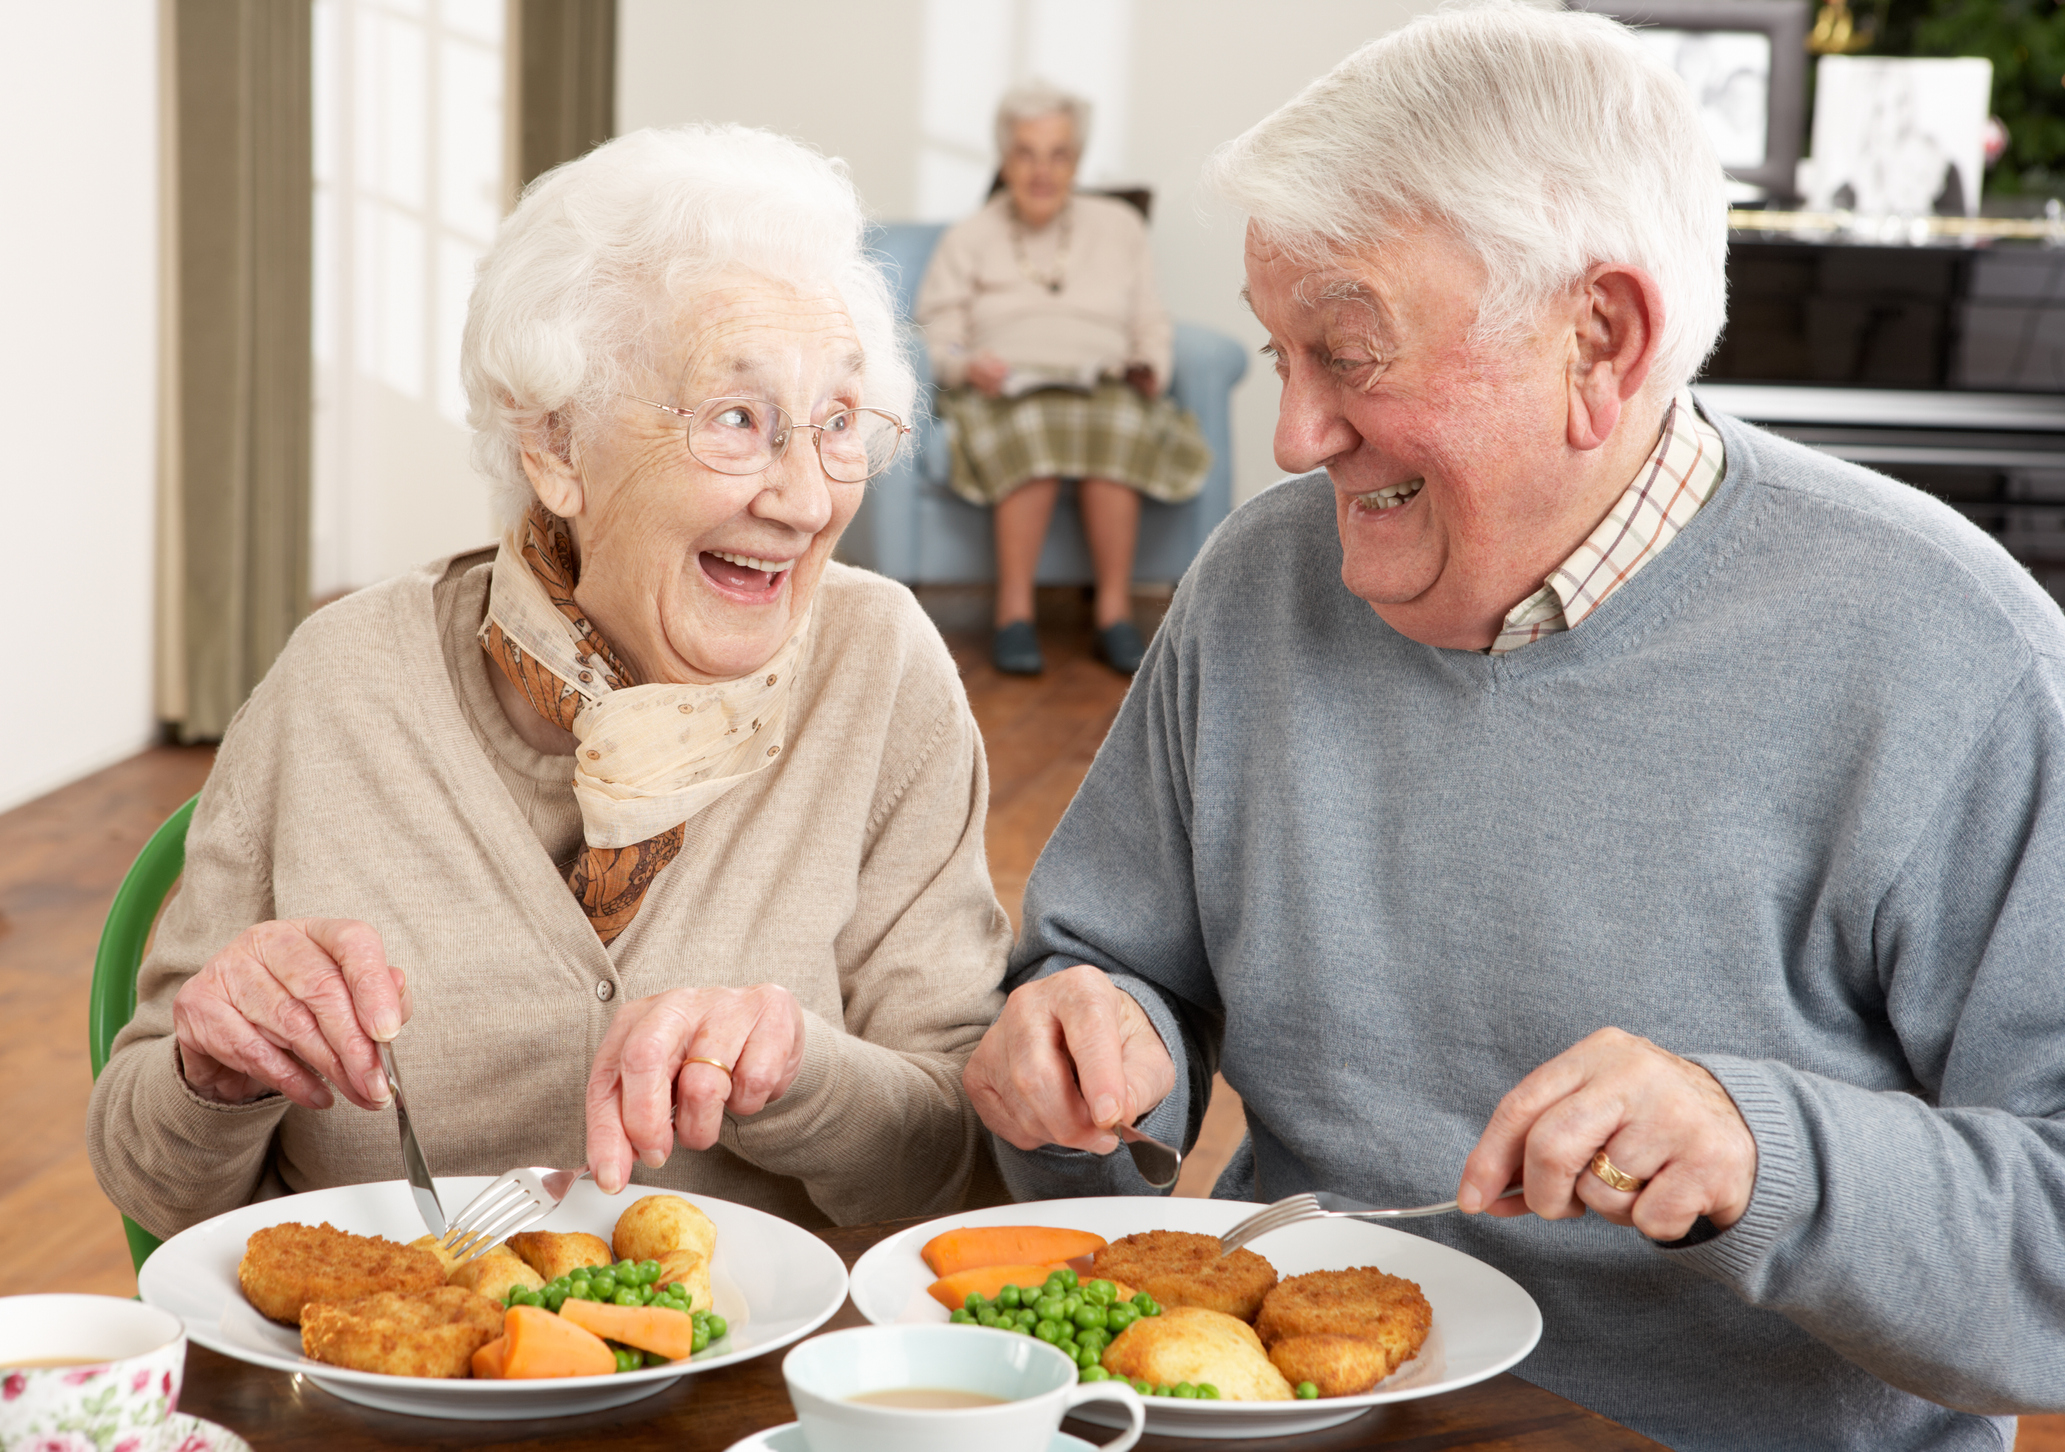 Senior man and woman smile at each other as they hold silverware above plates of food